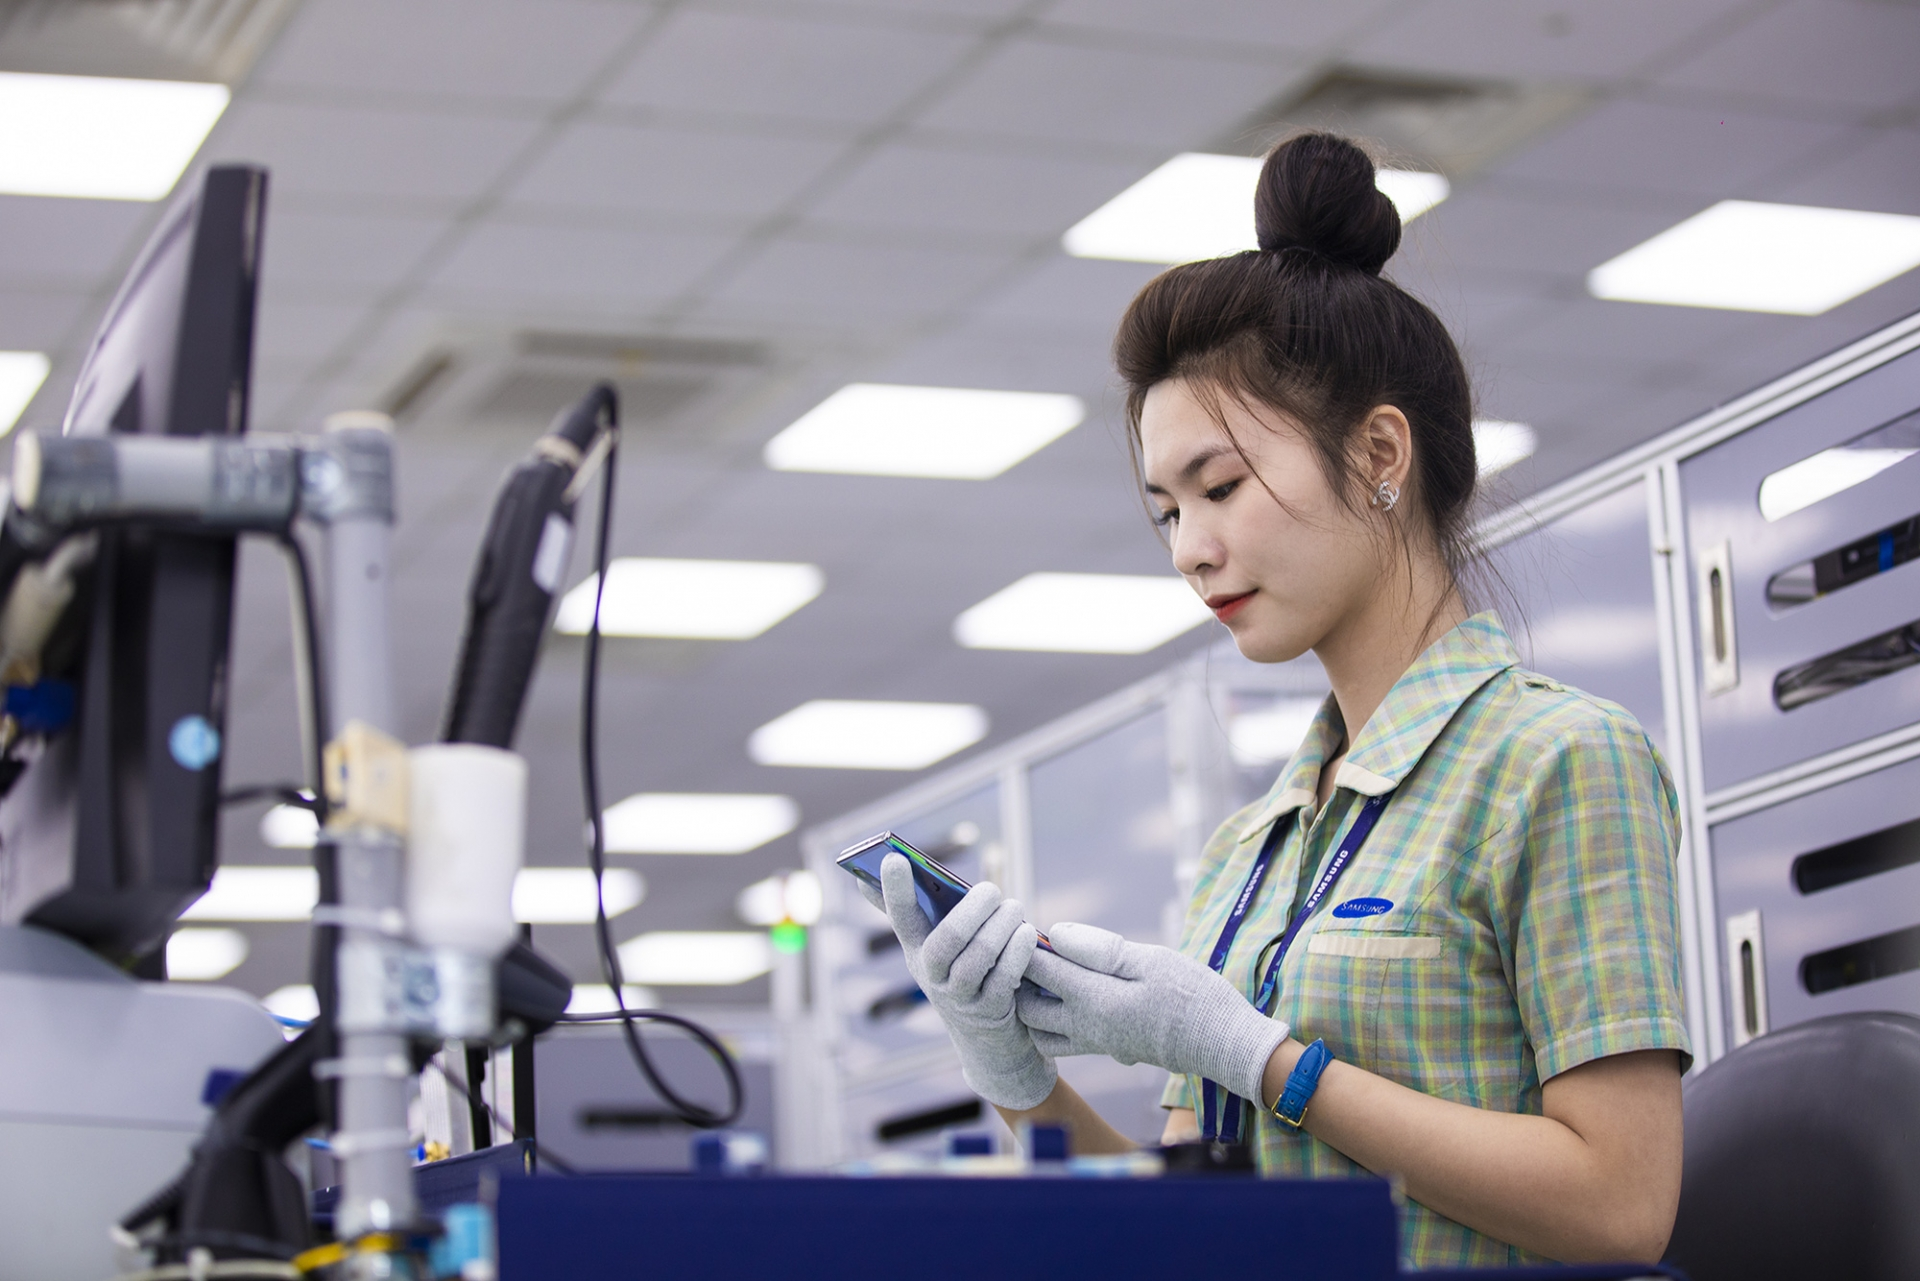 Vietnam's mobile devices reached the export value of $51 billion last year